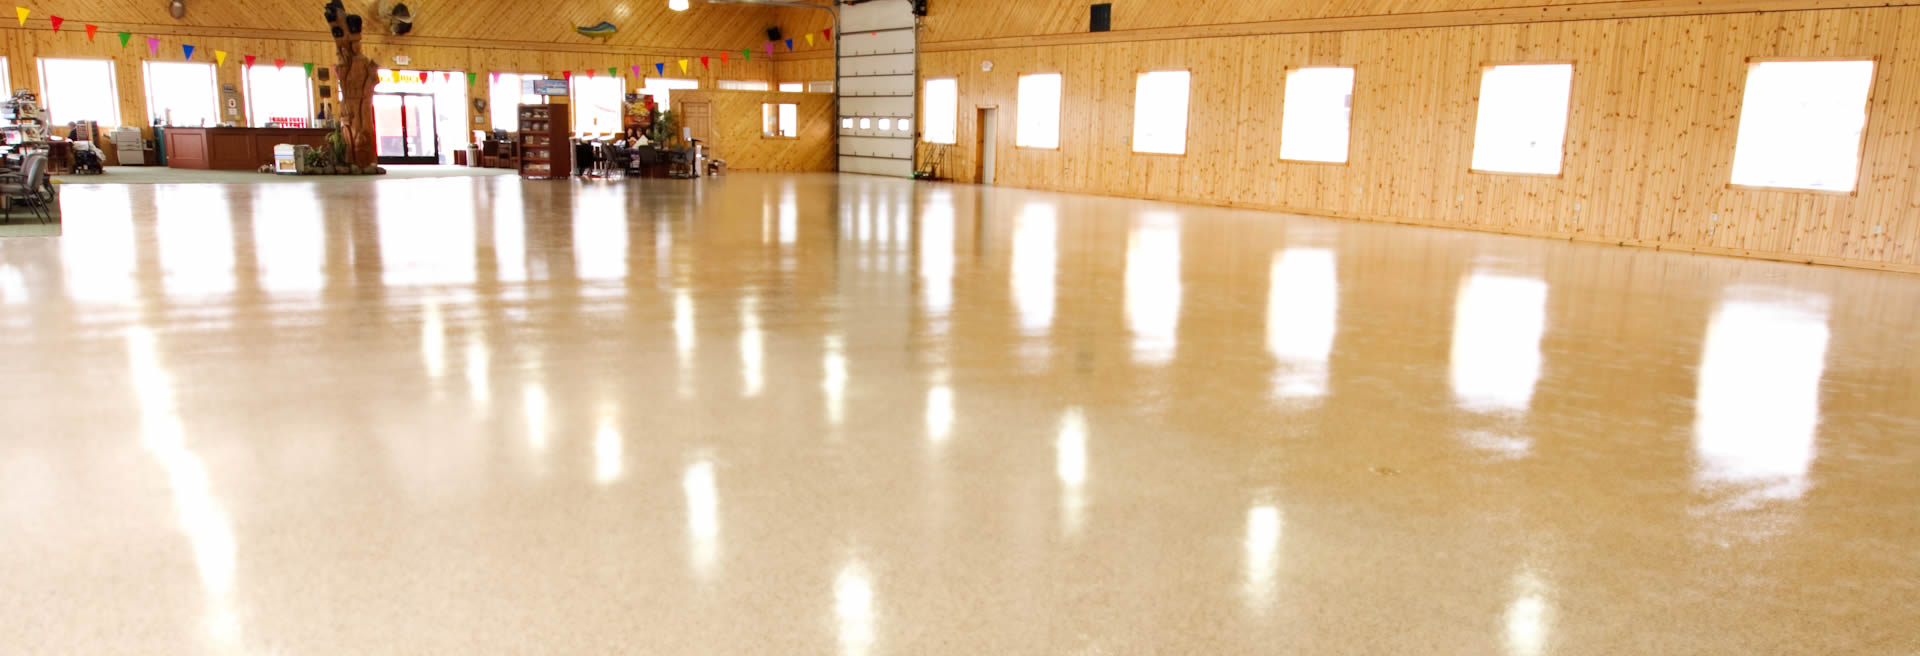 Commercial Floor Coatings Dallas Fort Worth